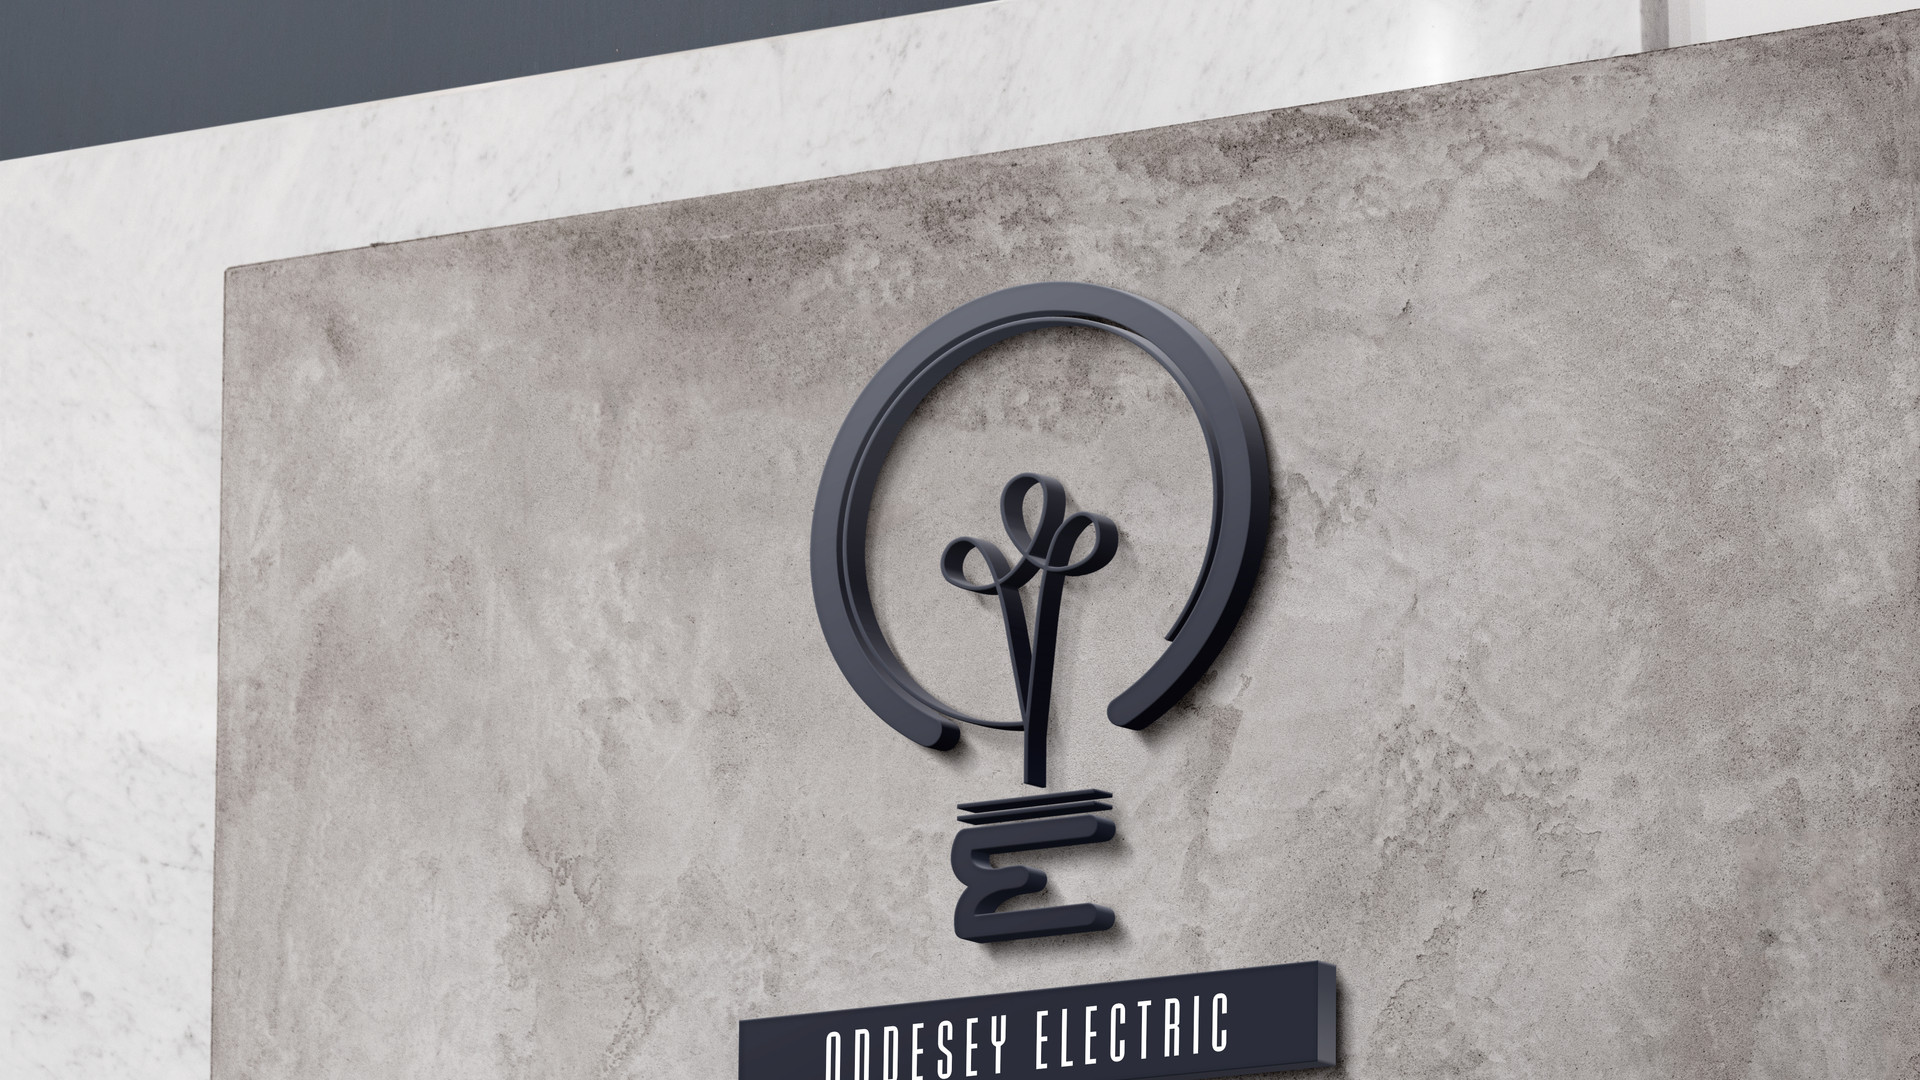 Oddesey Electric